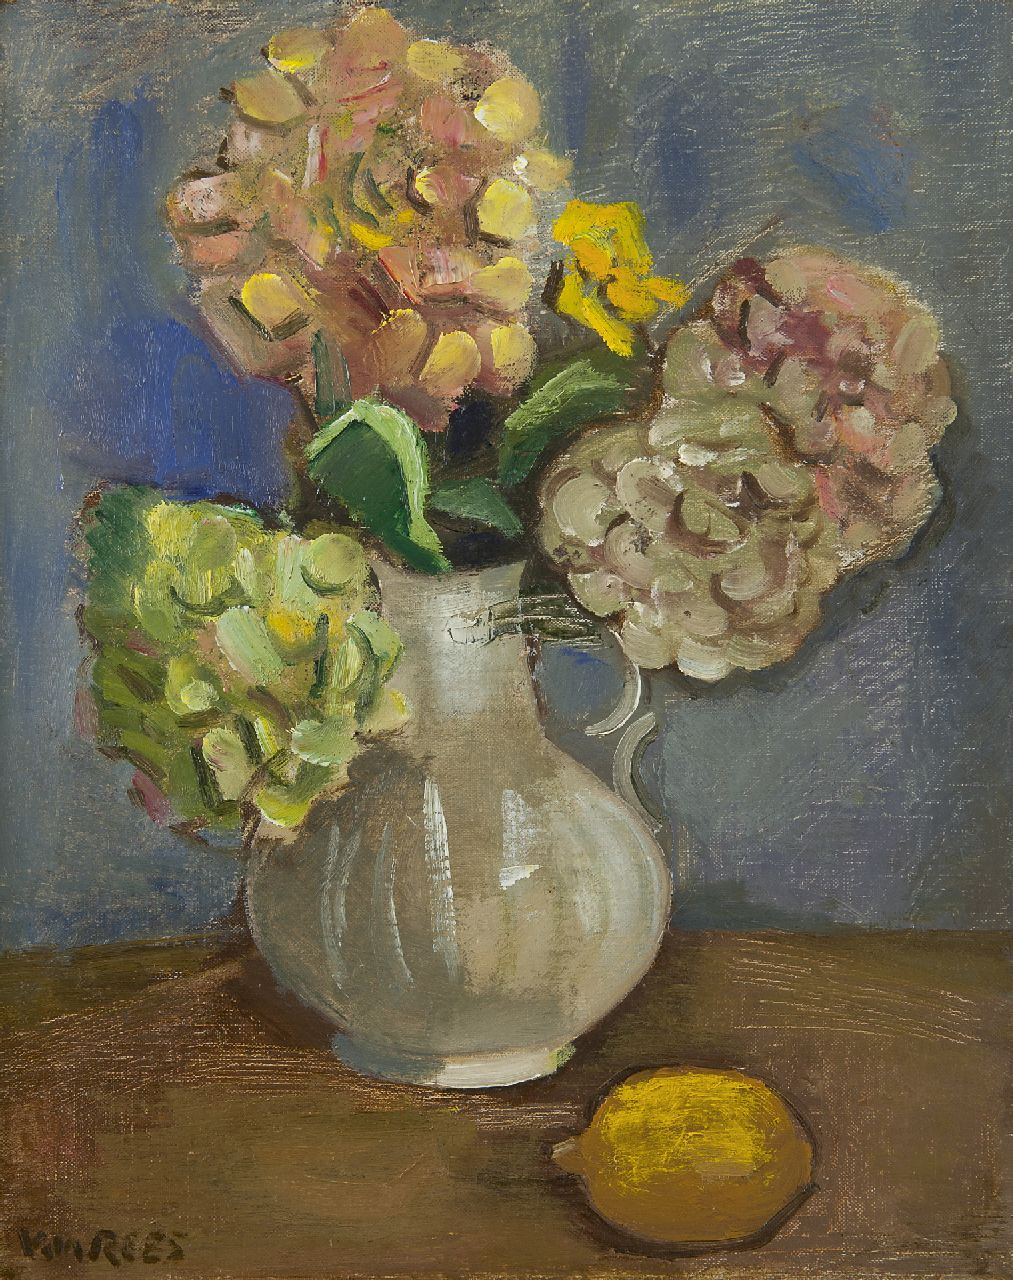 Rees O. van | Otto van Rees | Paintings offered for sale | Still life with hydrangea and a lemon, oil on canvas 50.5 x 40.5 cm, signed l.l.